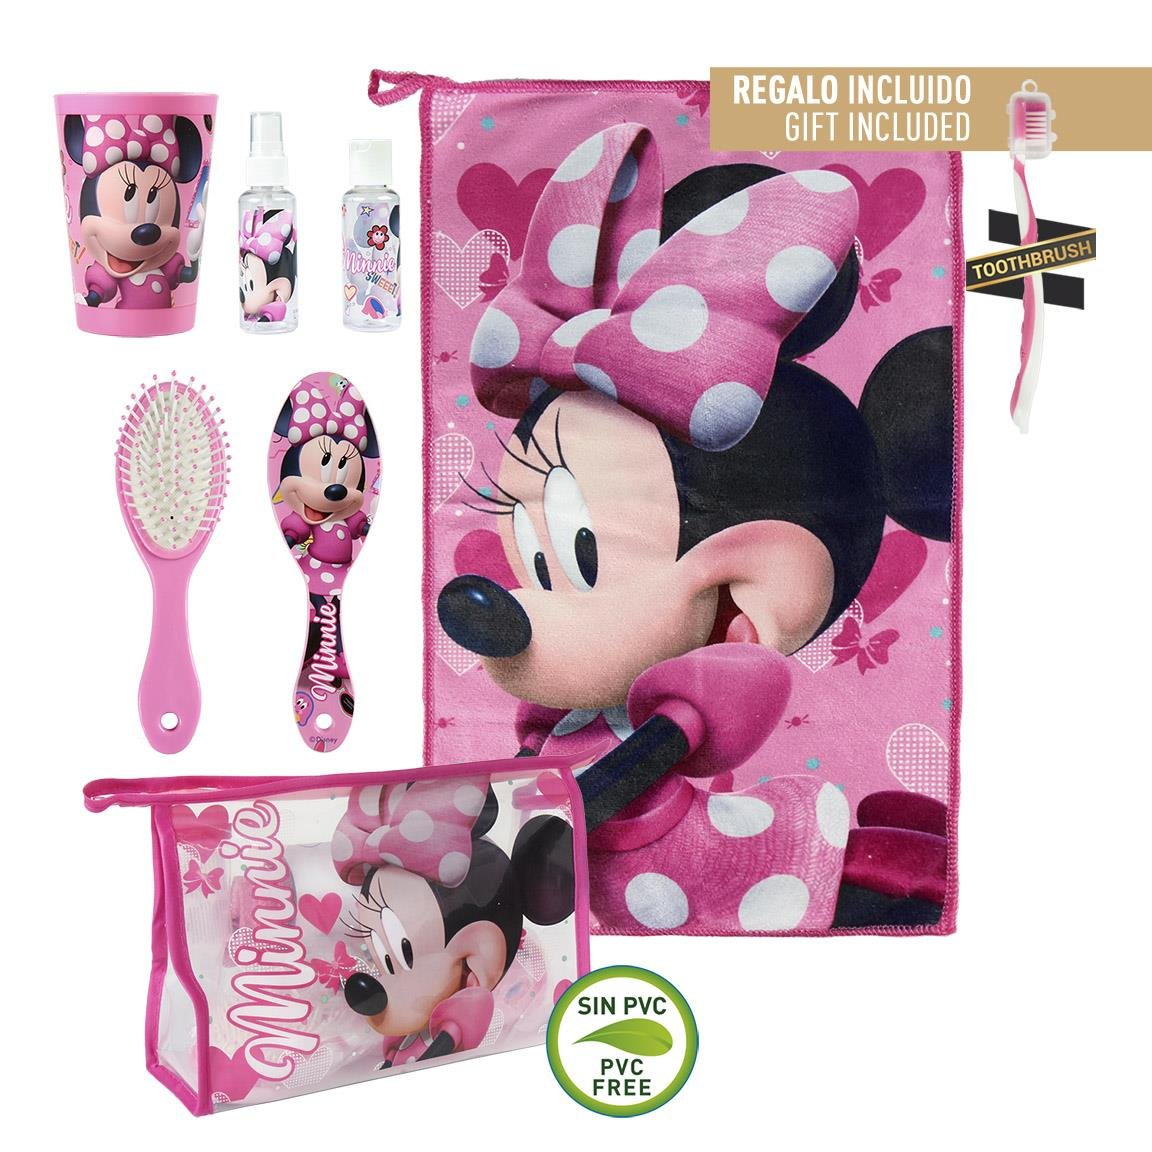 Divertido neceser de Minnie con un set de higiene incluído.